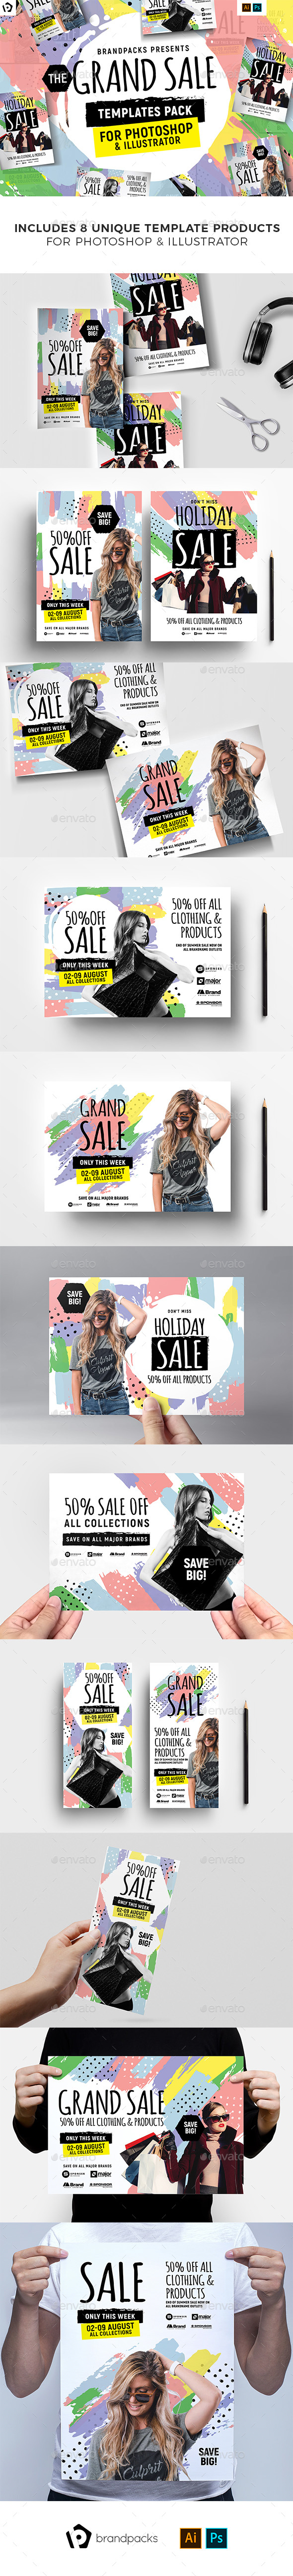 Grand Sale Templates Bundle - Commerce Flyers